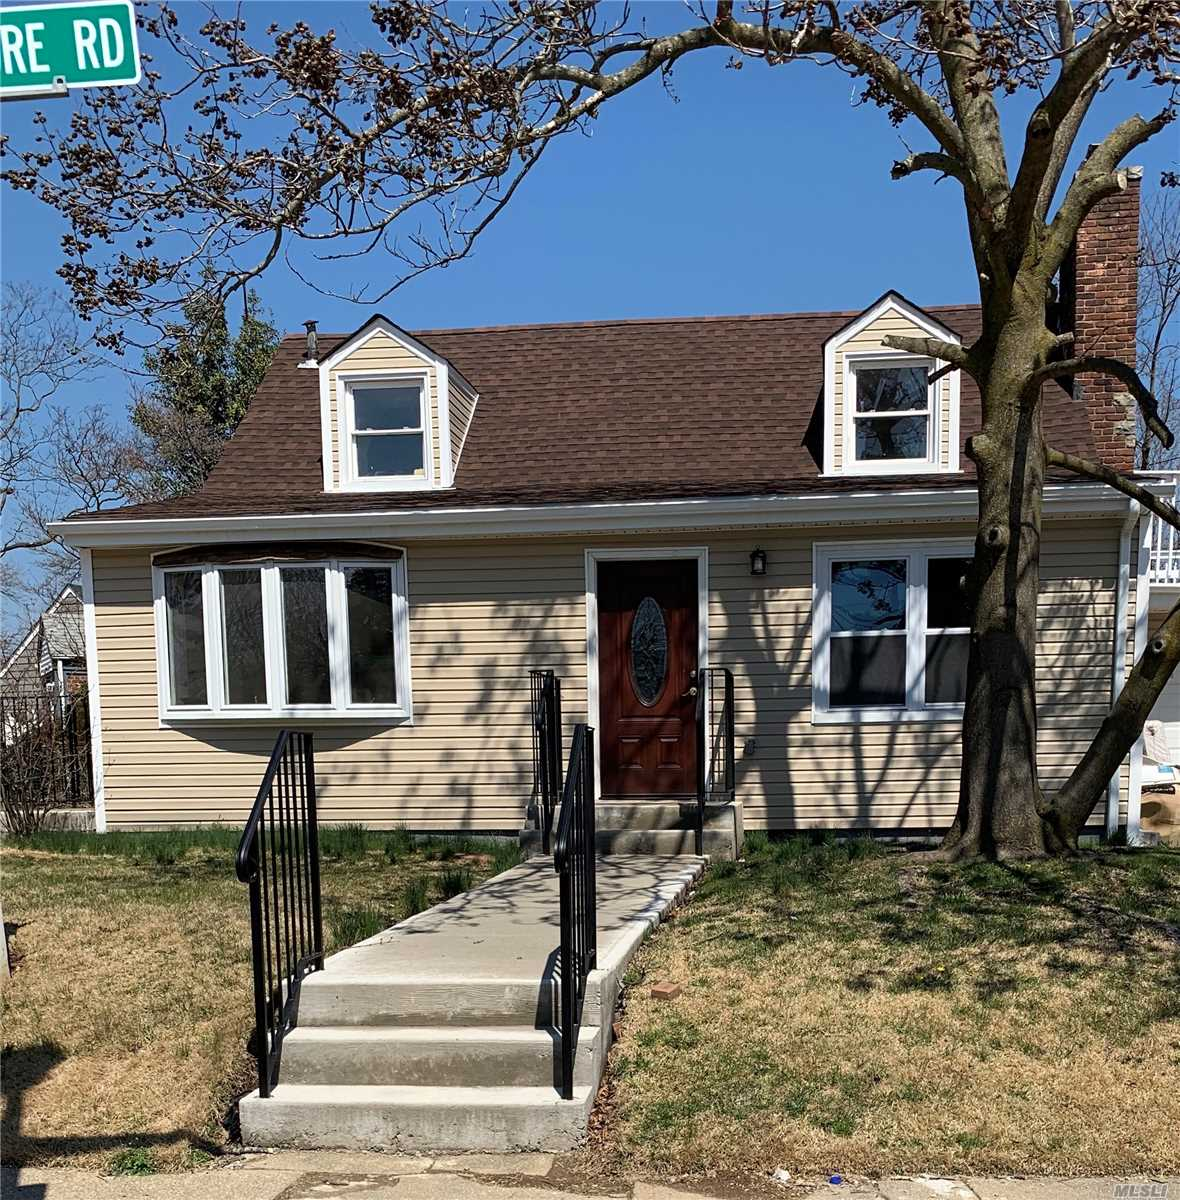 Hurry This Home Won't Last! Move Right Into This Renovated And Up-Dated 4 Bedroom, 3 Stunning New Bathrooms, New Eat In Kitchen. Hardwood Floors & For More Added Living Space A Full Finished Basement .Too Much To List Must See.